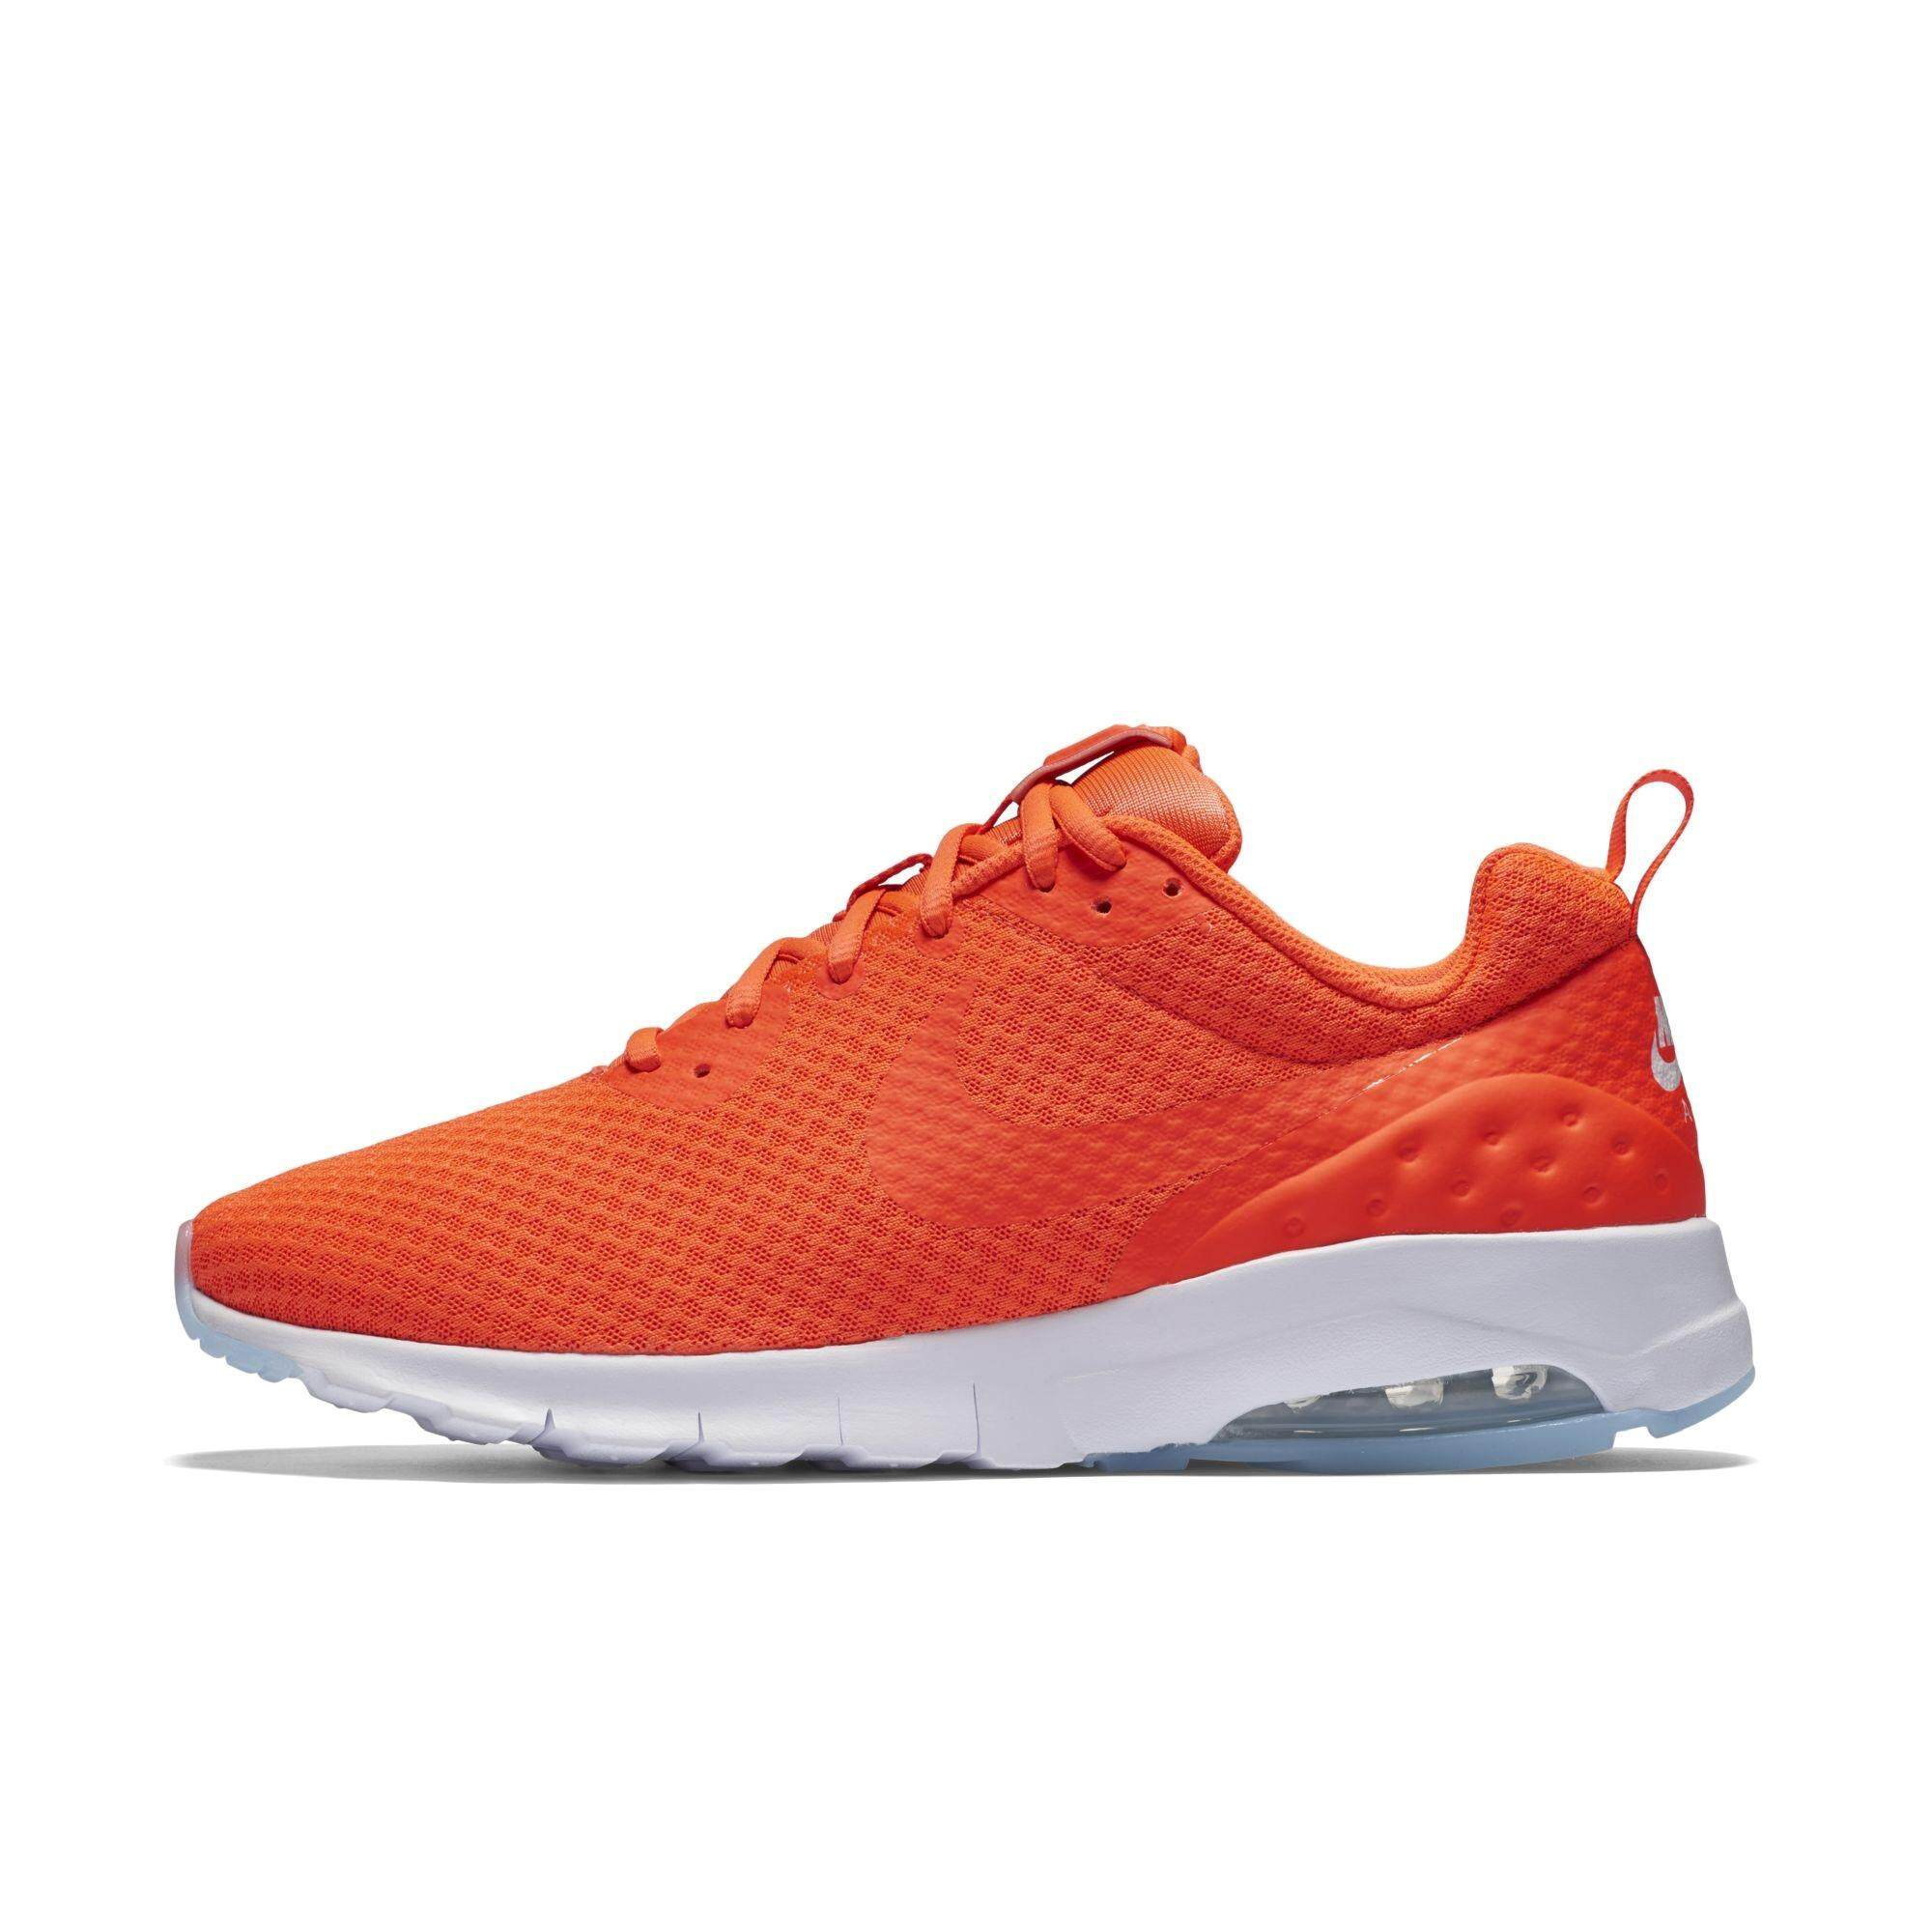 a226fede0cb0 Nike men s shoes series casual shoes shock absorbing sports shoes sports  and leisure running shoes 833260